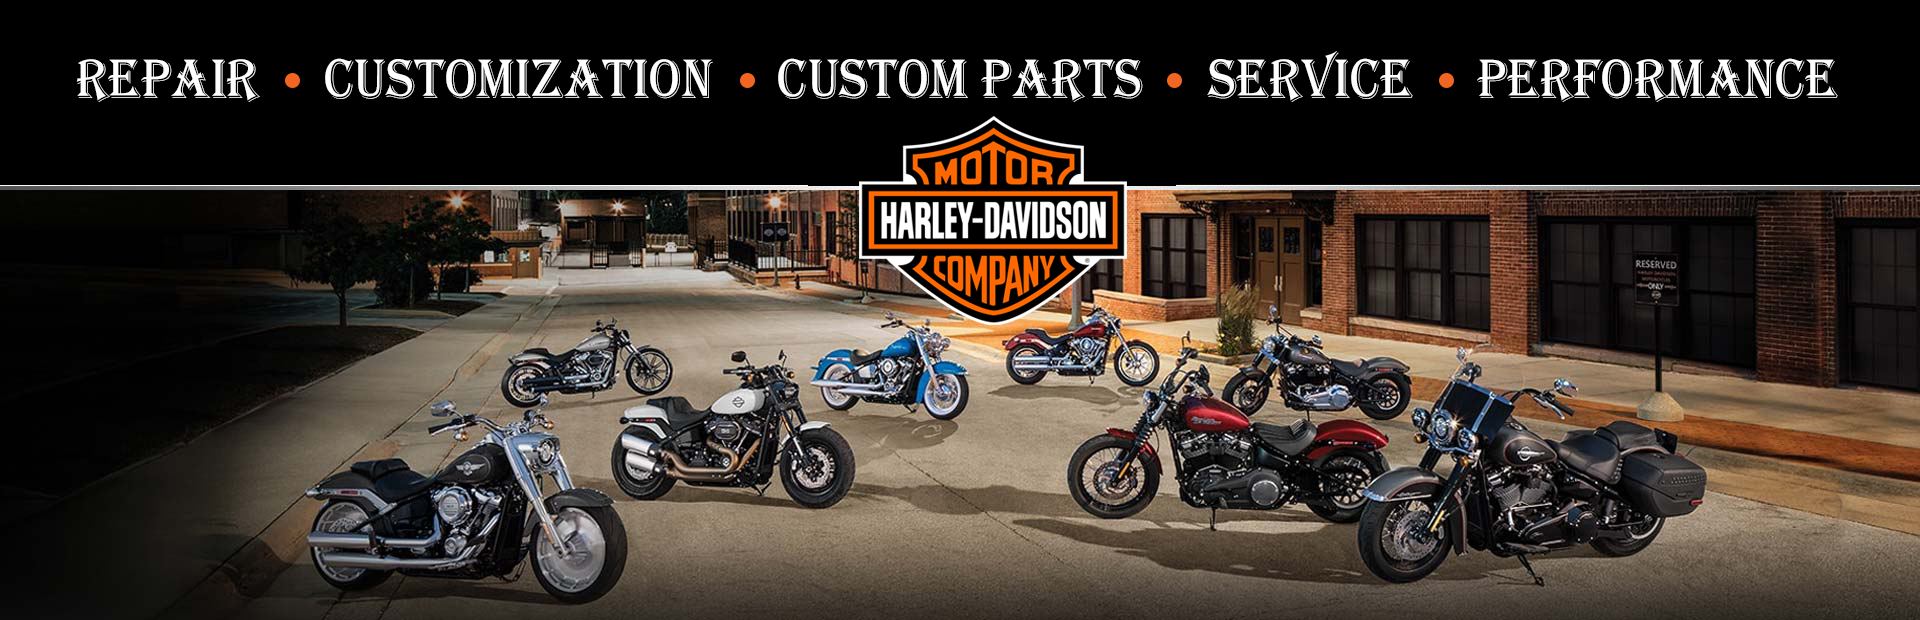 Harley Davidson Repair & Customization Shop